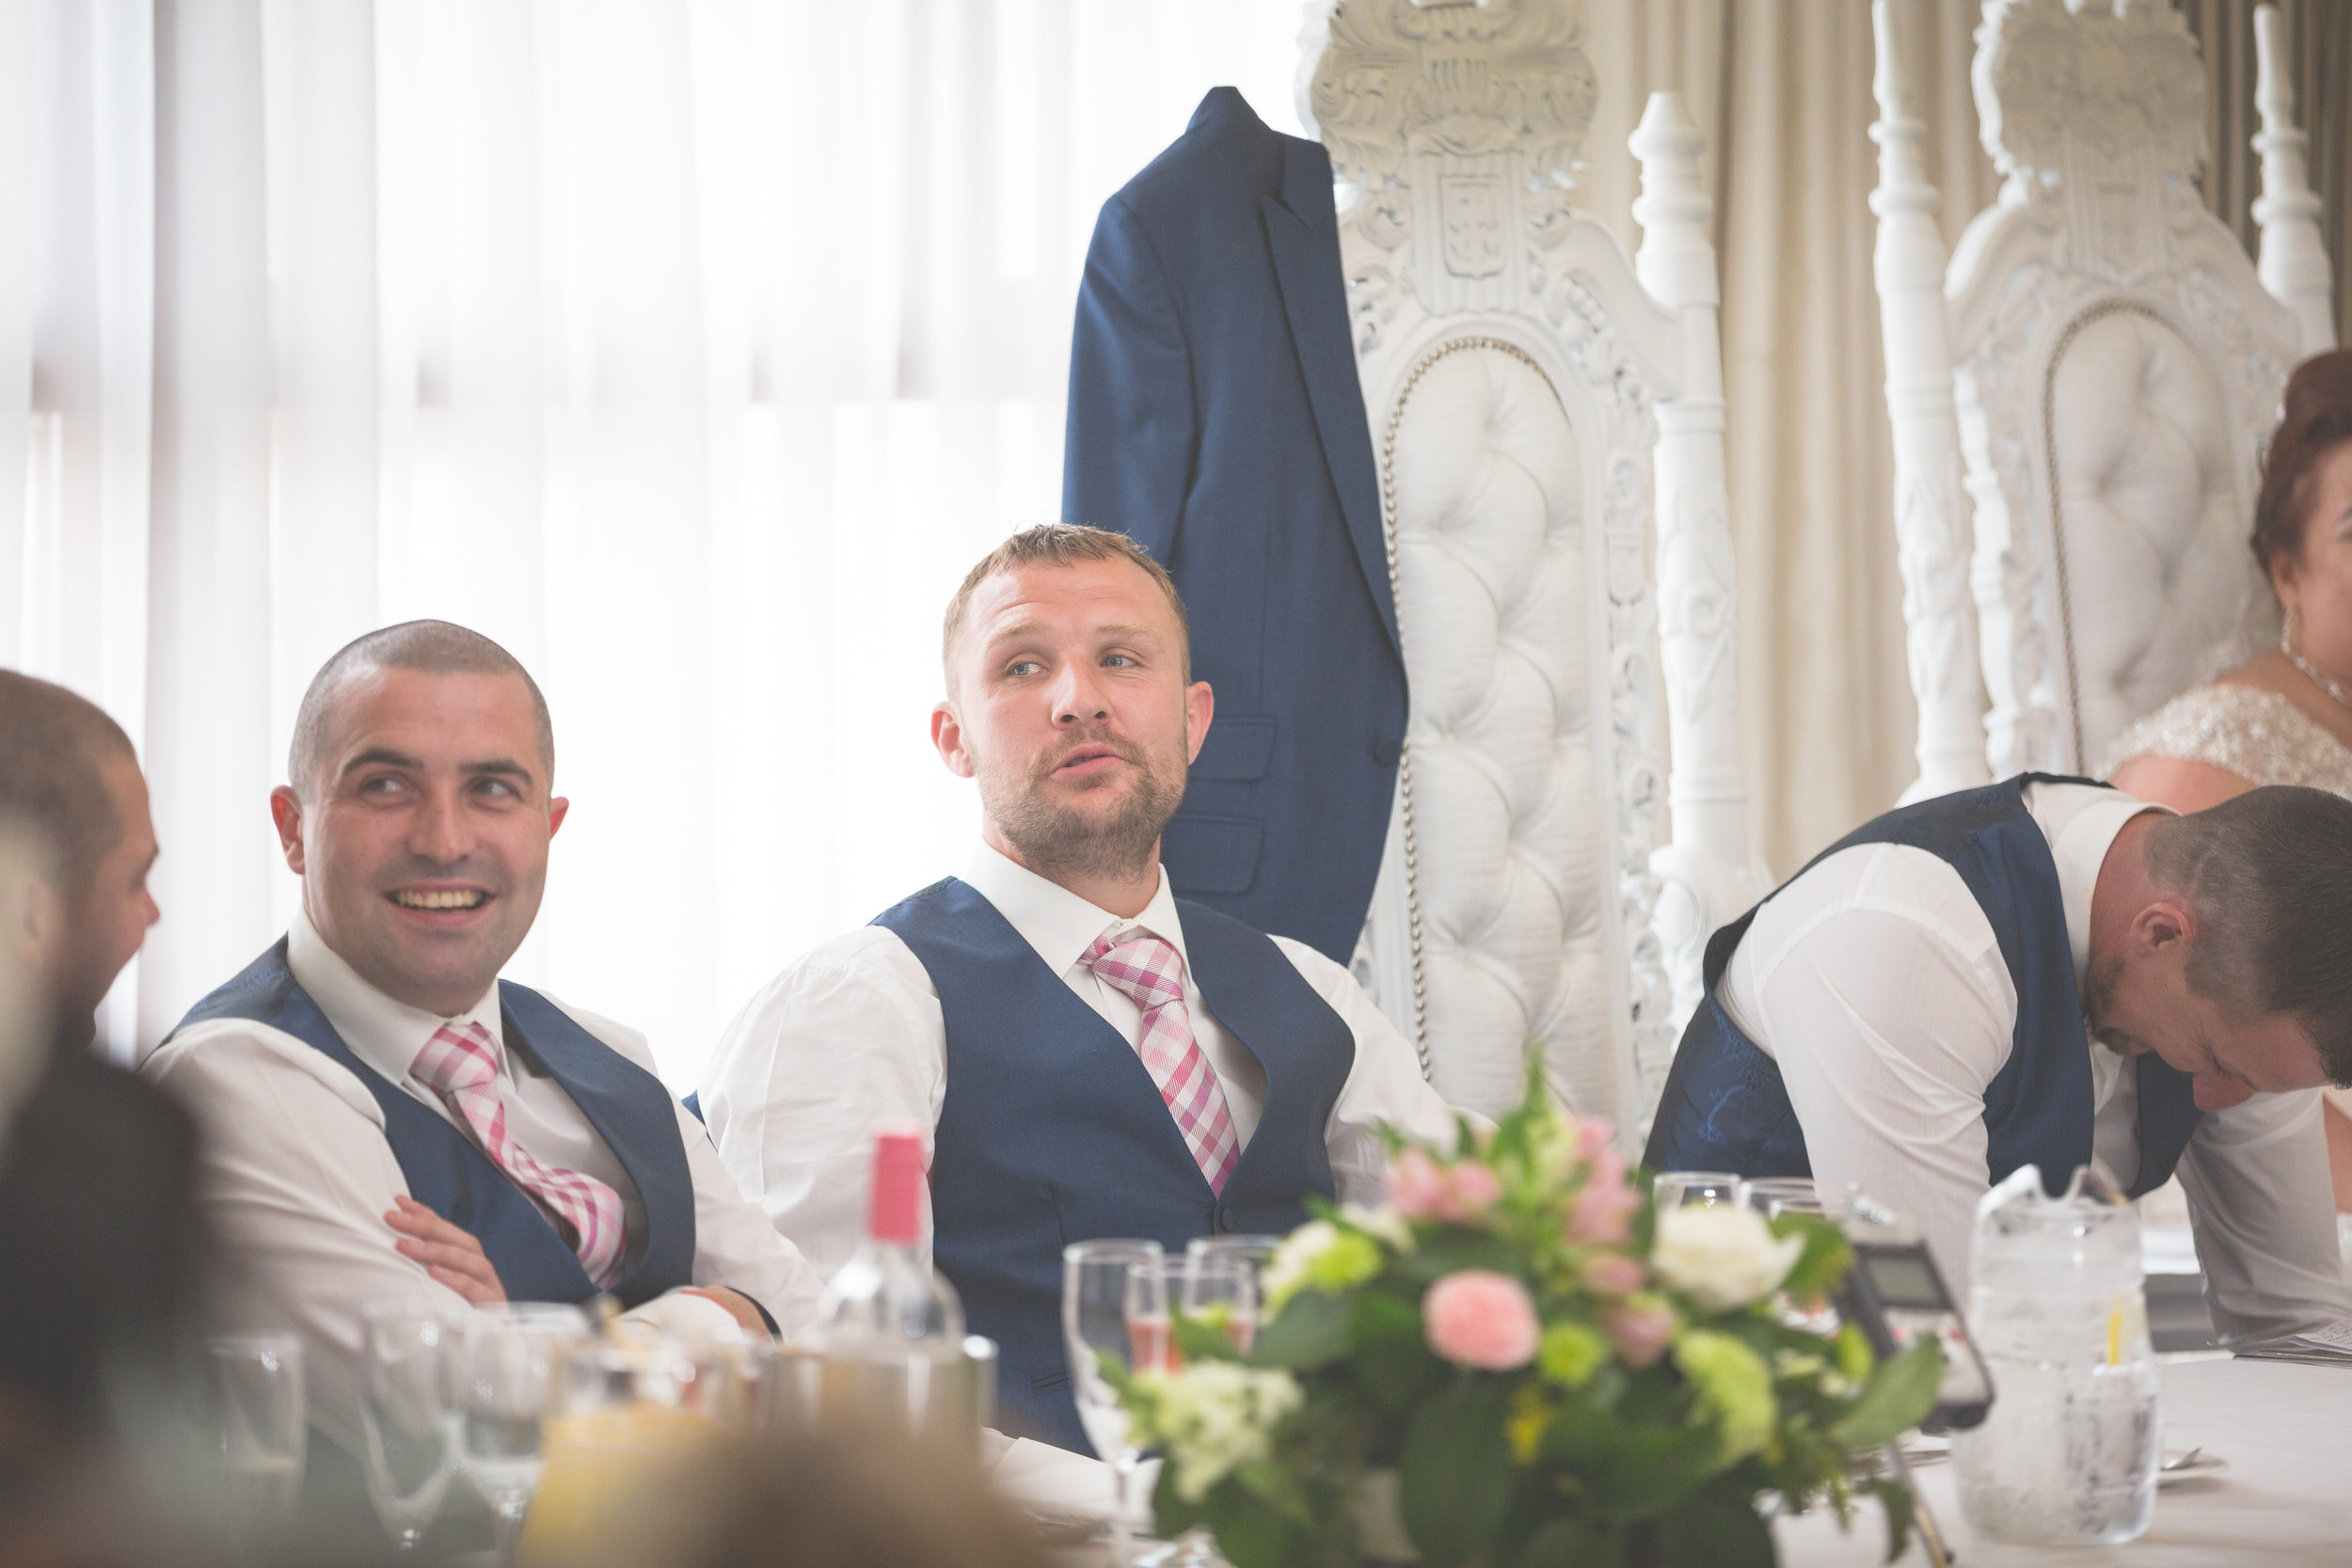 Antoinette & Stephen - Speeches | Brian McEwan Photography | Wedding Photographer Northern Ireland 36.jpg